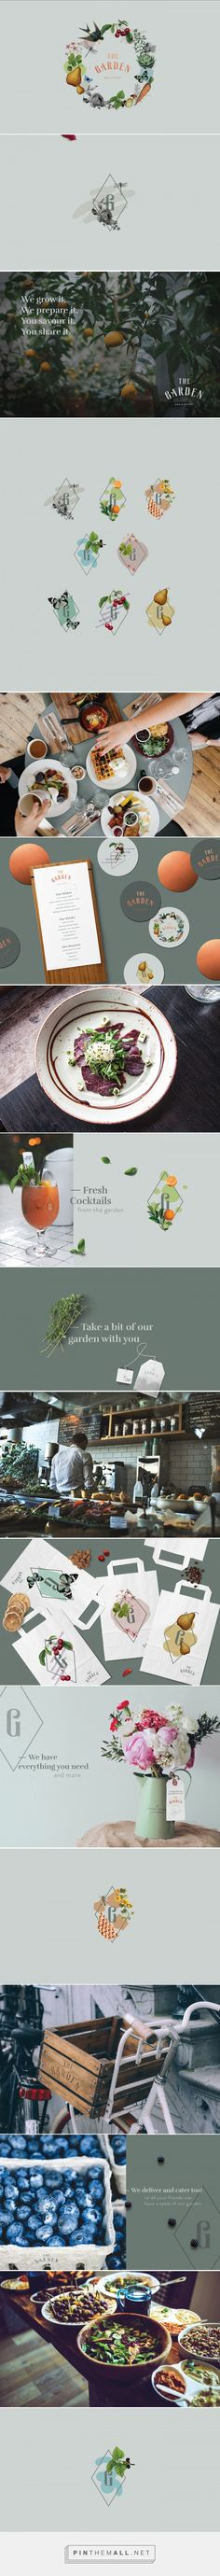 The Garden Restaurant Branding by Constanca Soromenho | Fivestar Branding Agency – Design and Branding Agency & Curated Inspiration Gallery